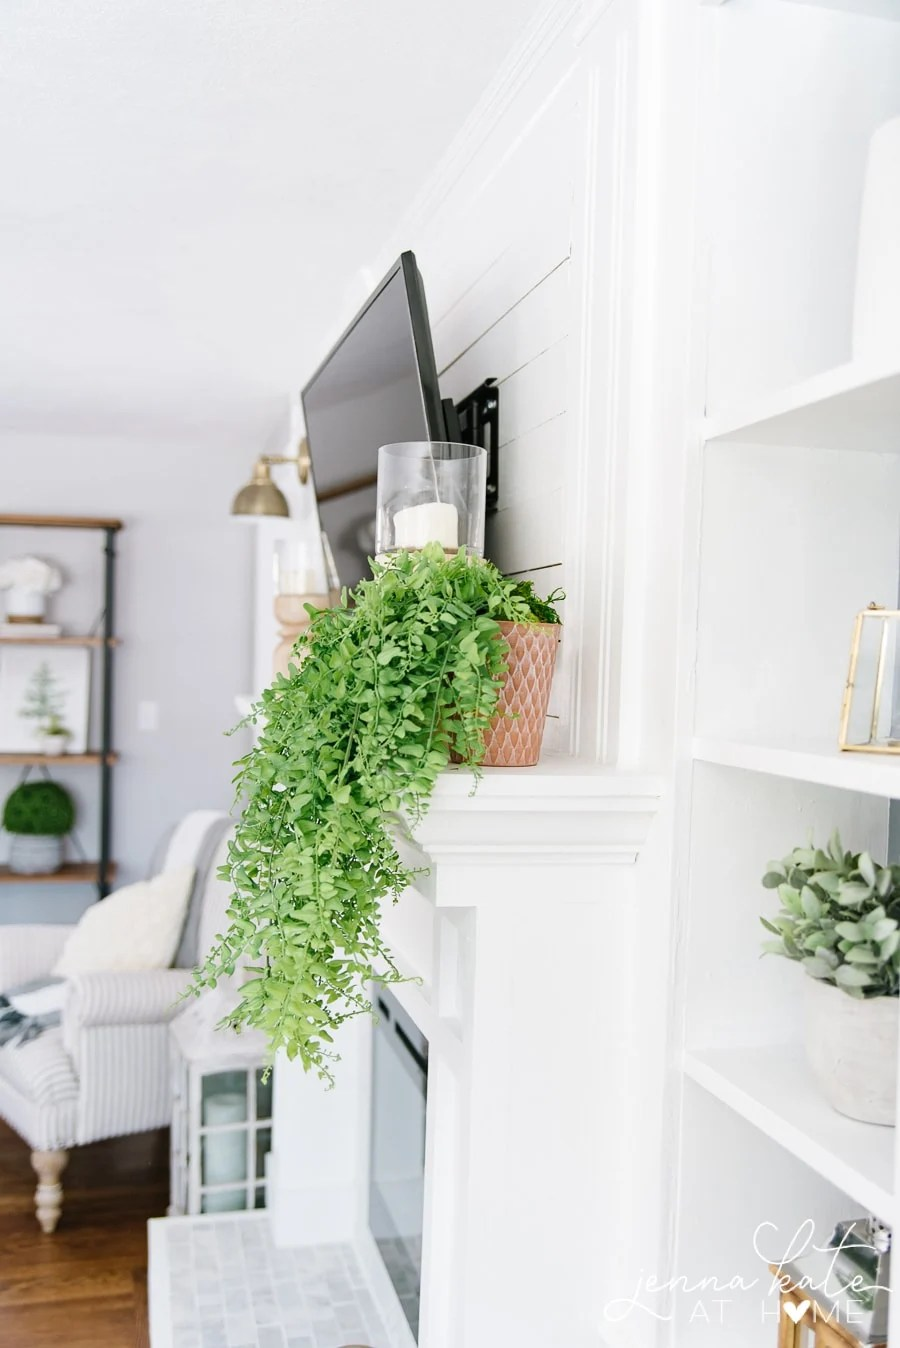 Place your faux trailing plant anywhere you'd like to add some fresh green color